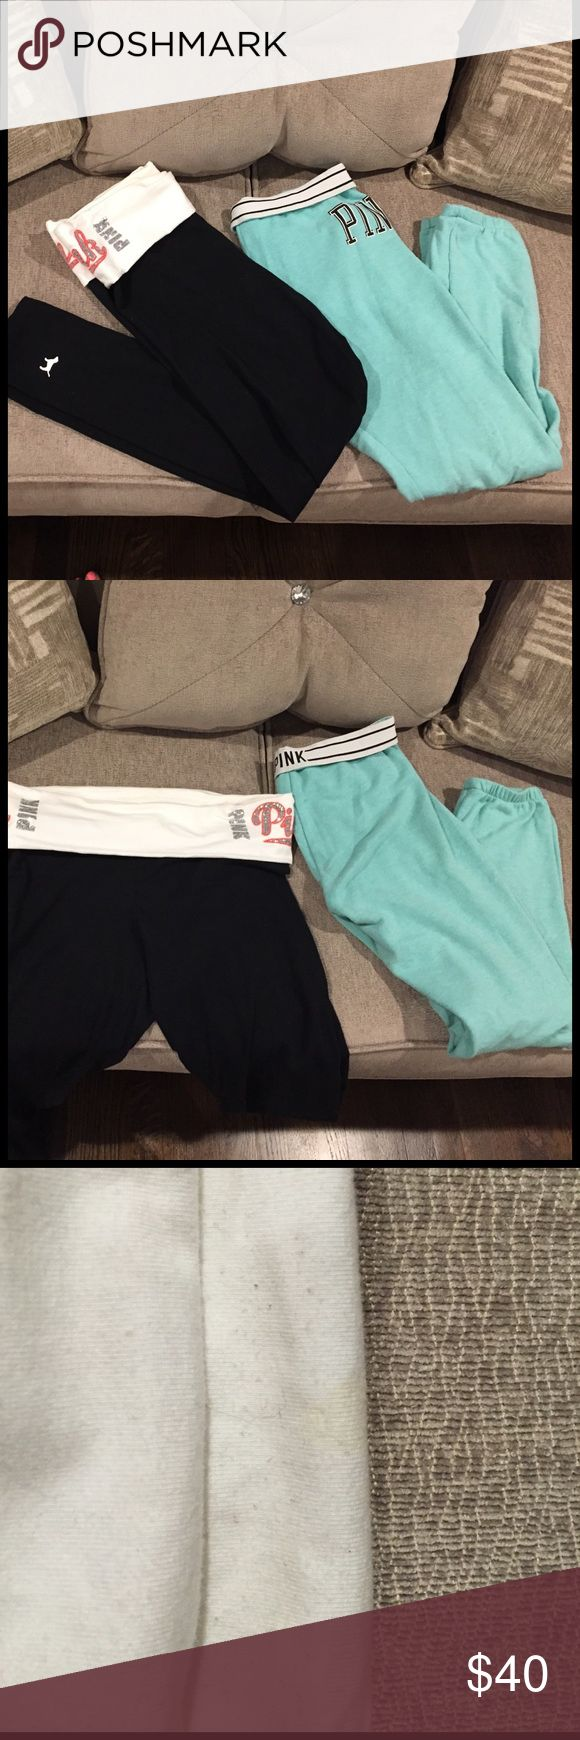 2 for $35! Pink Victoria secret 2 for $35! Pink bling yoga leggings worn few times little stain on inside fold over flap. Paired with pink skinny sweat pant worn still in great condition has fold over skinny waist. Yoga pant is size Medium, skinny sweats are size Small. PINK Victoria's Secret Other